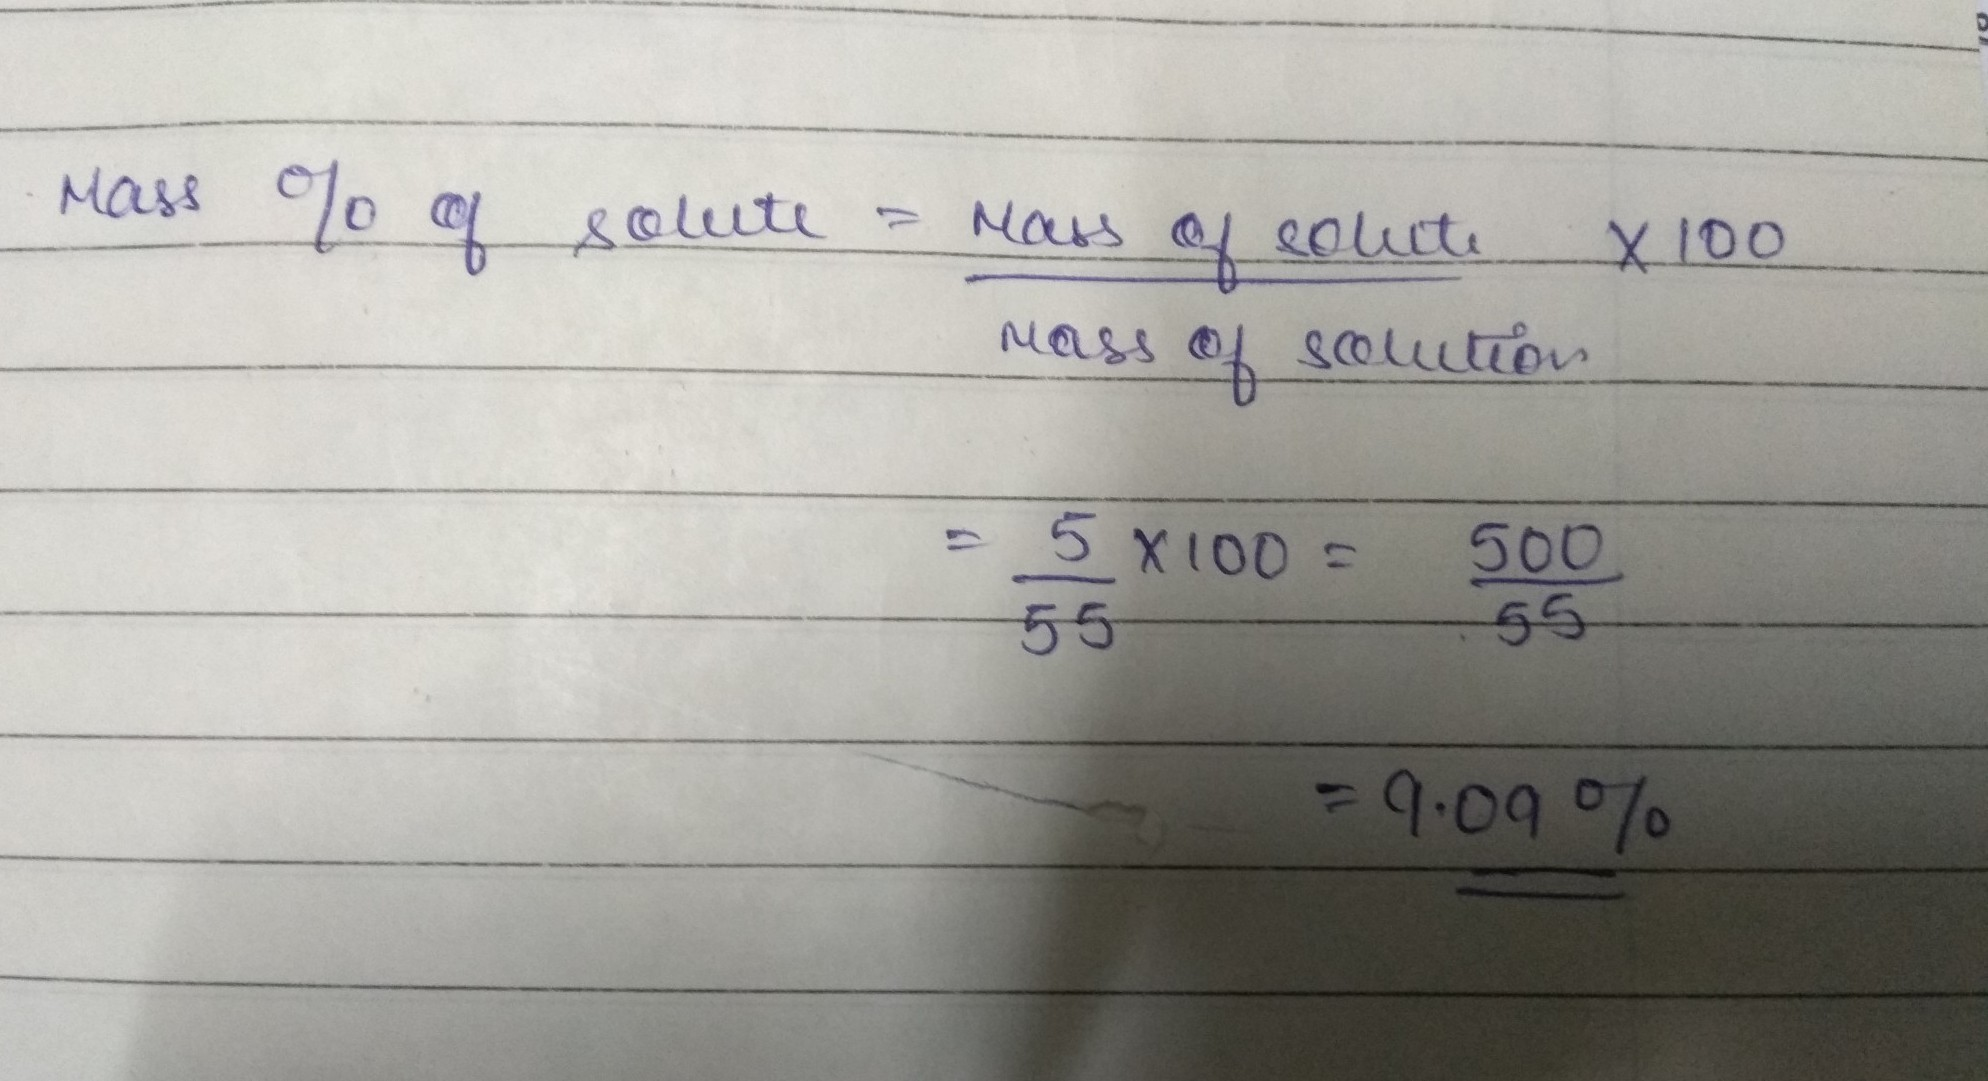 What Is The Mass Percent Of The Solute In The Solution